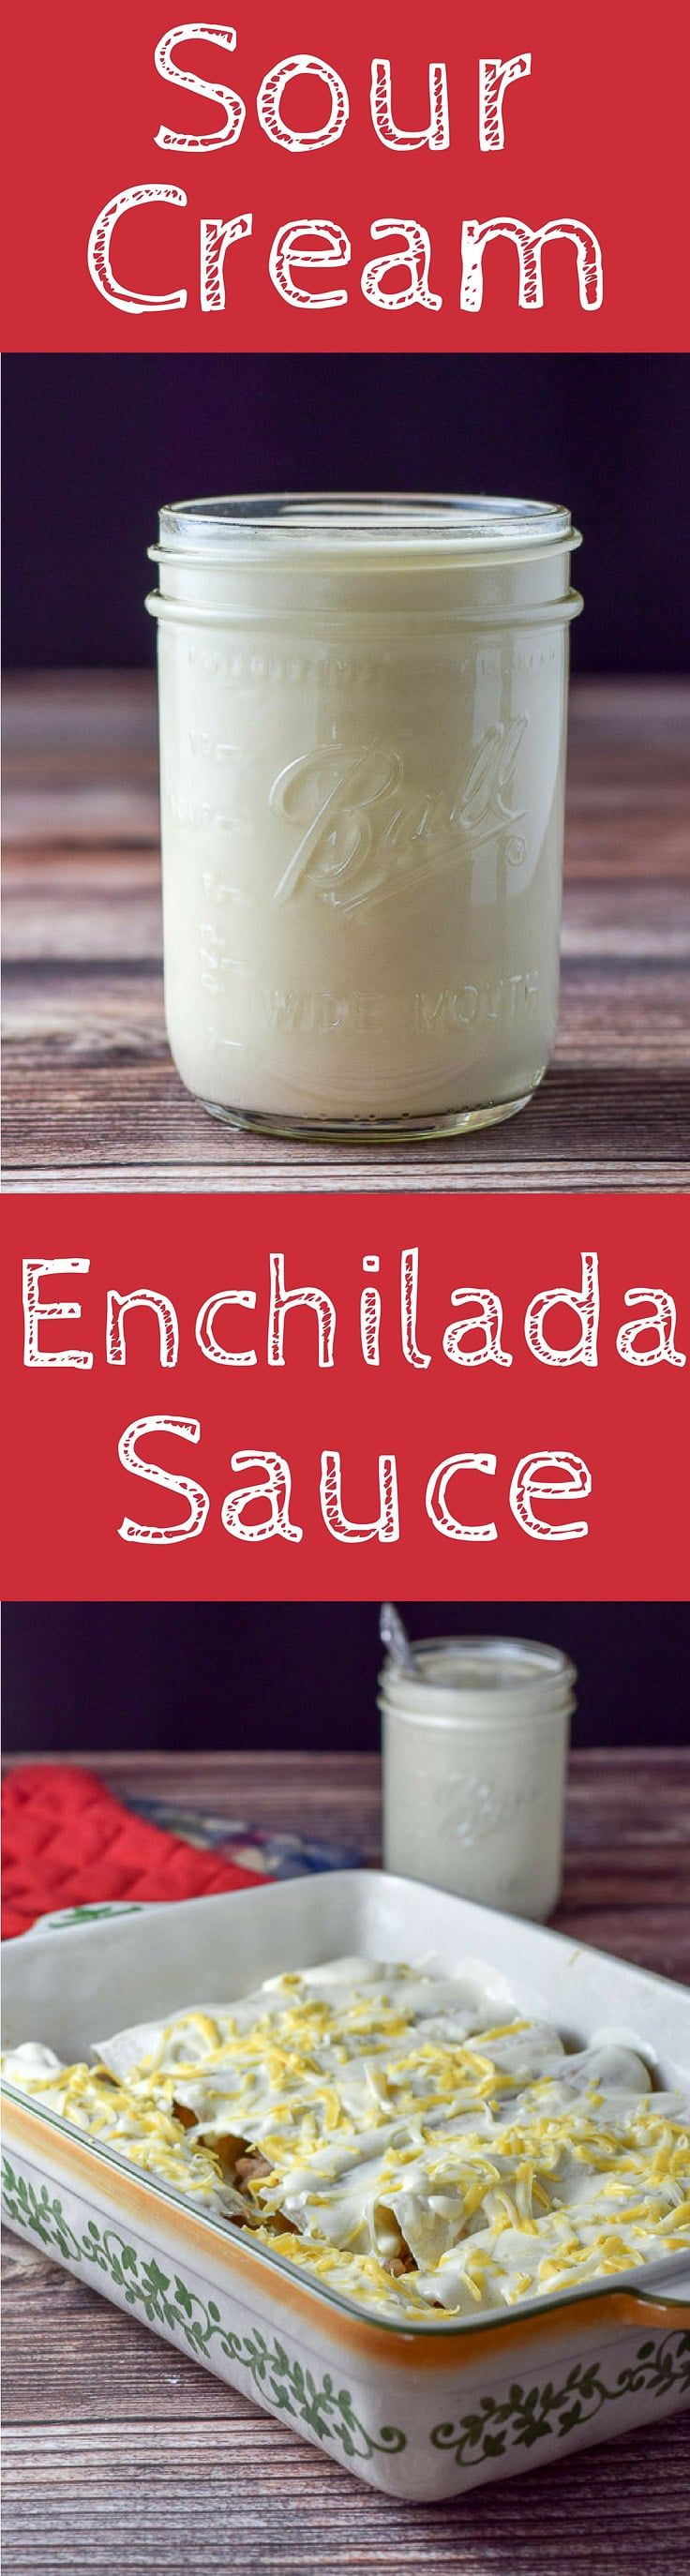 Sour Cream Enchilada Sauce is not only easy to make but it is delicious and versatile!! Drape it on enchiladas, on veggies, on pasta or eat by the spoon. I dare you! http://ddel.co/sc-ench-sauce via @dishesdelish